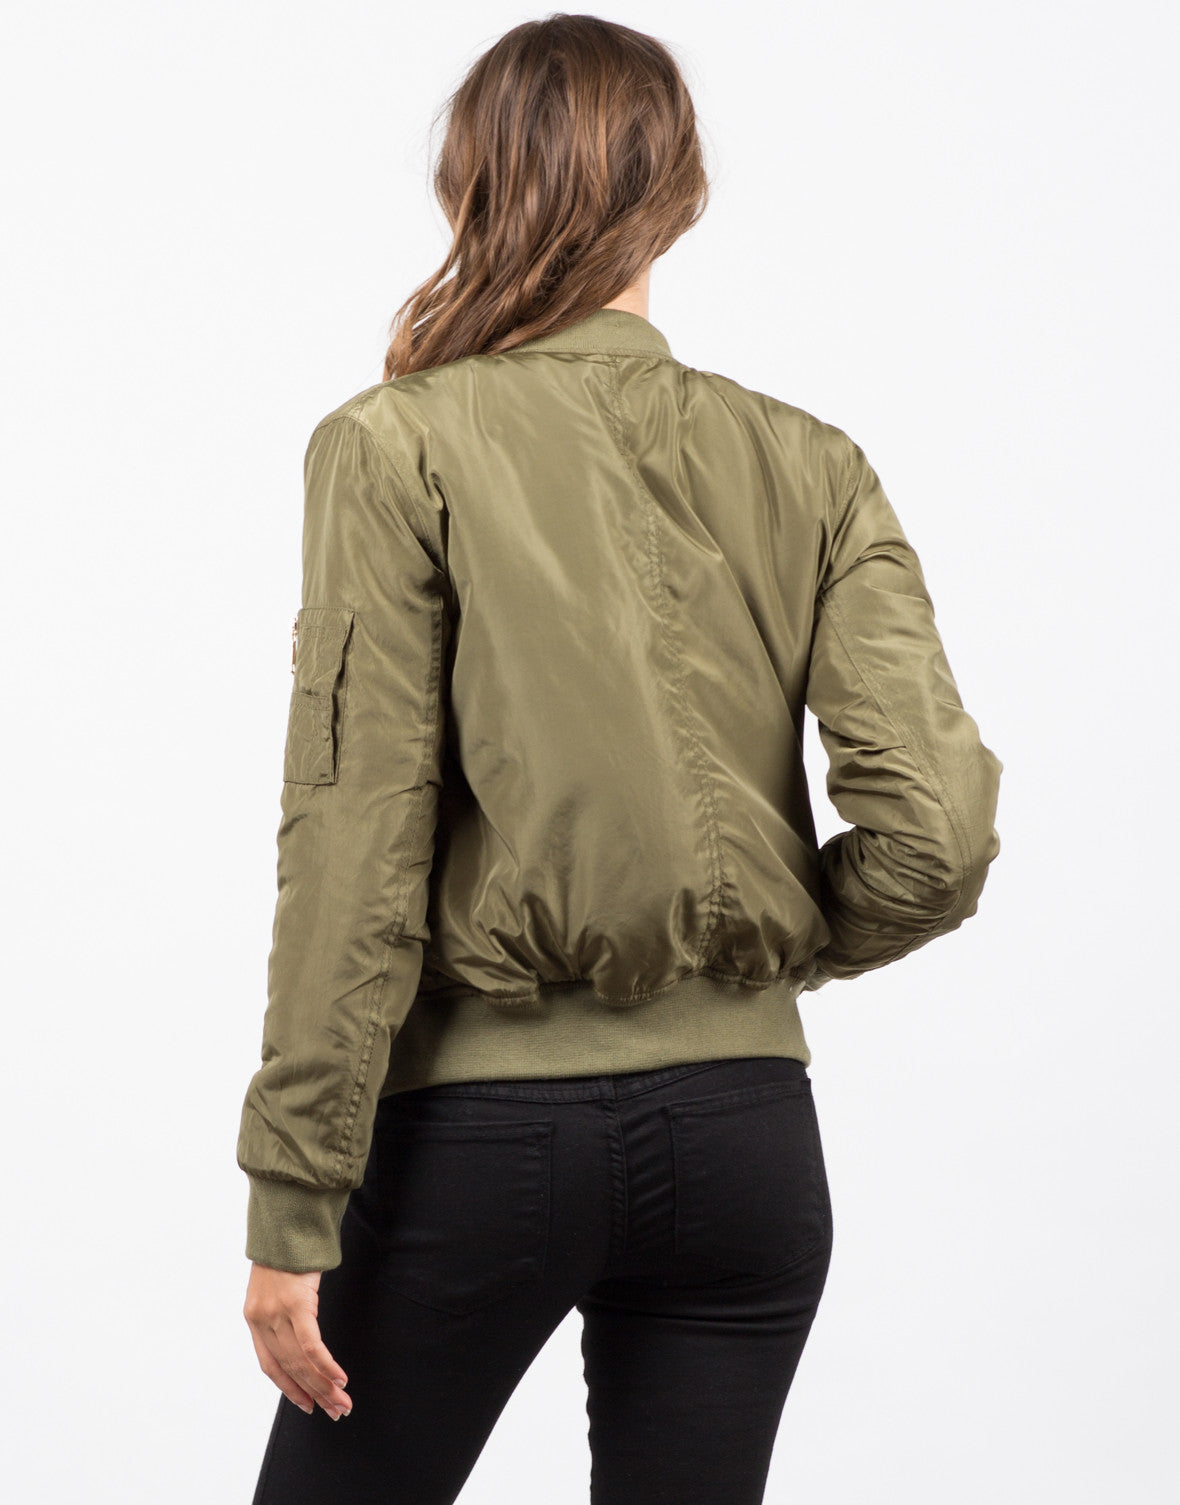 Back  View of Gold Zippered Bomber Jacket